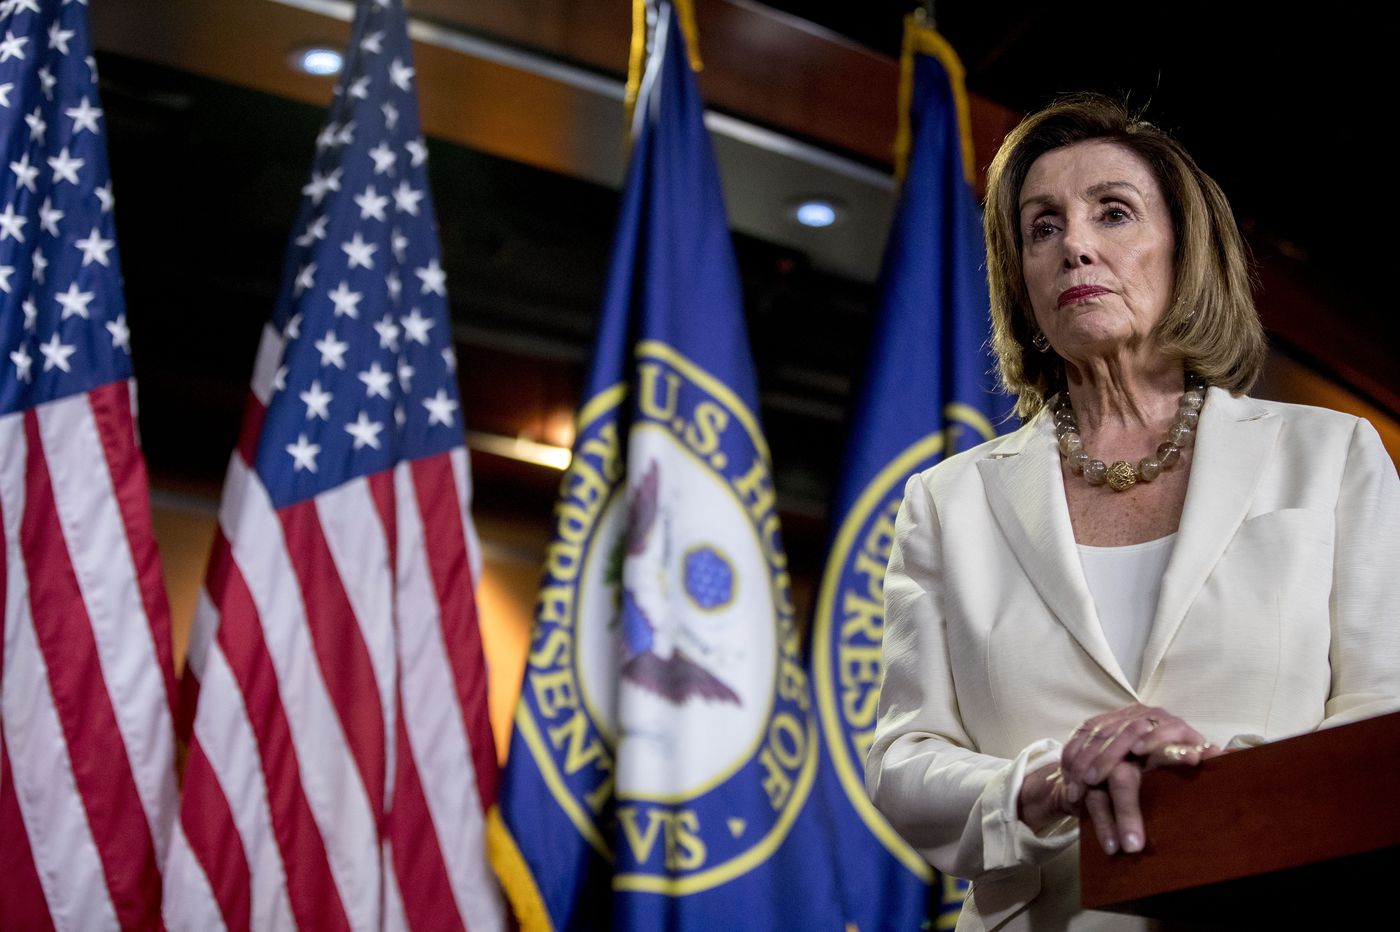 Pelosi ready for deal on borrowing limit, spending levels